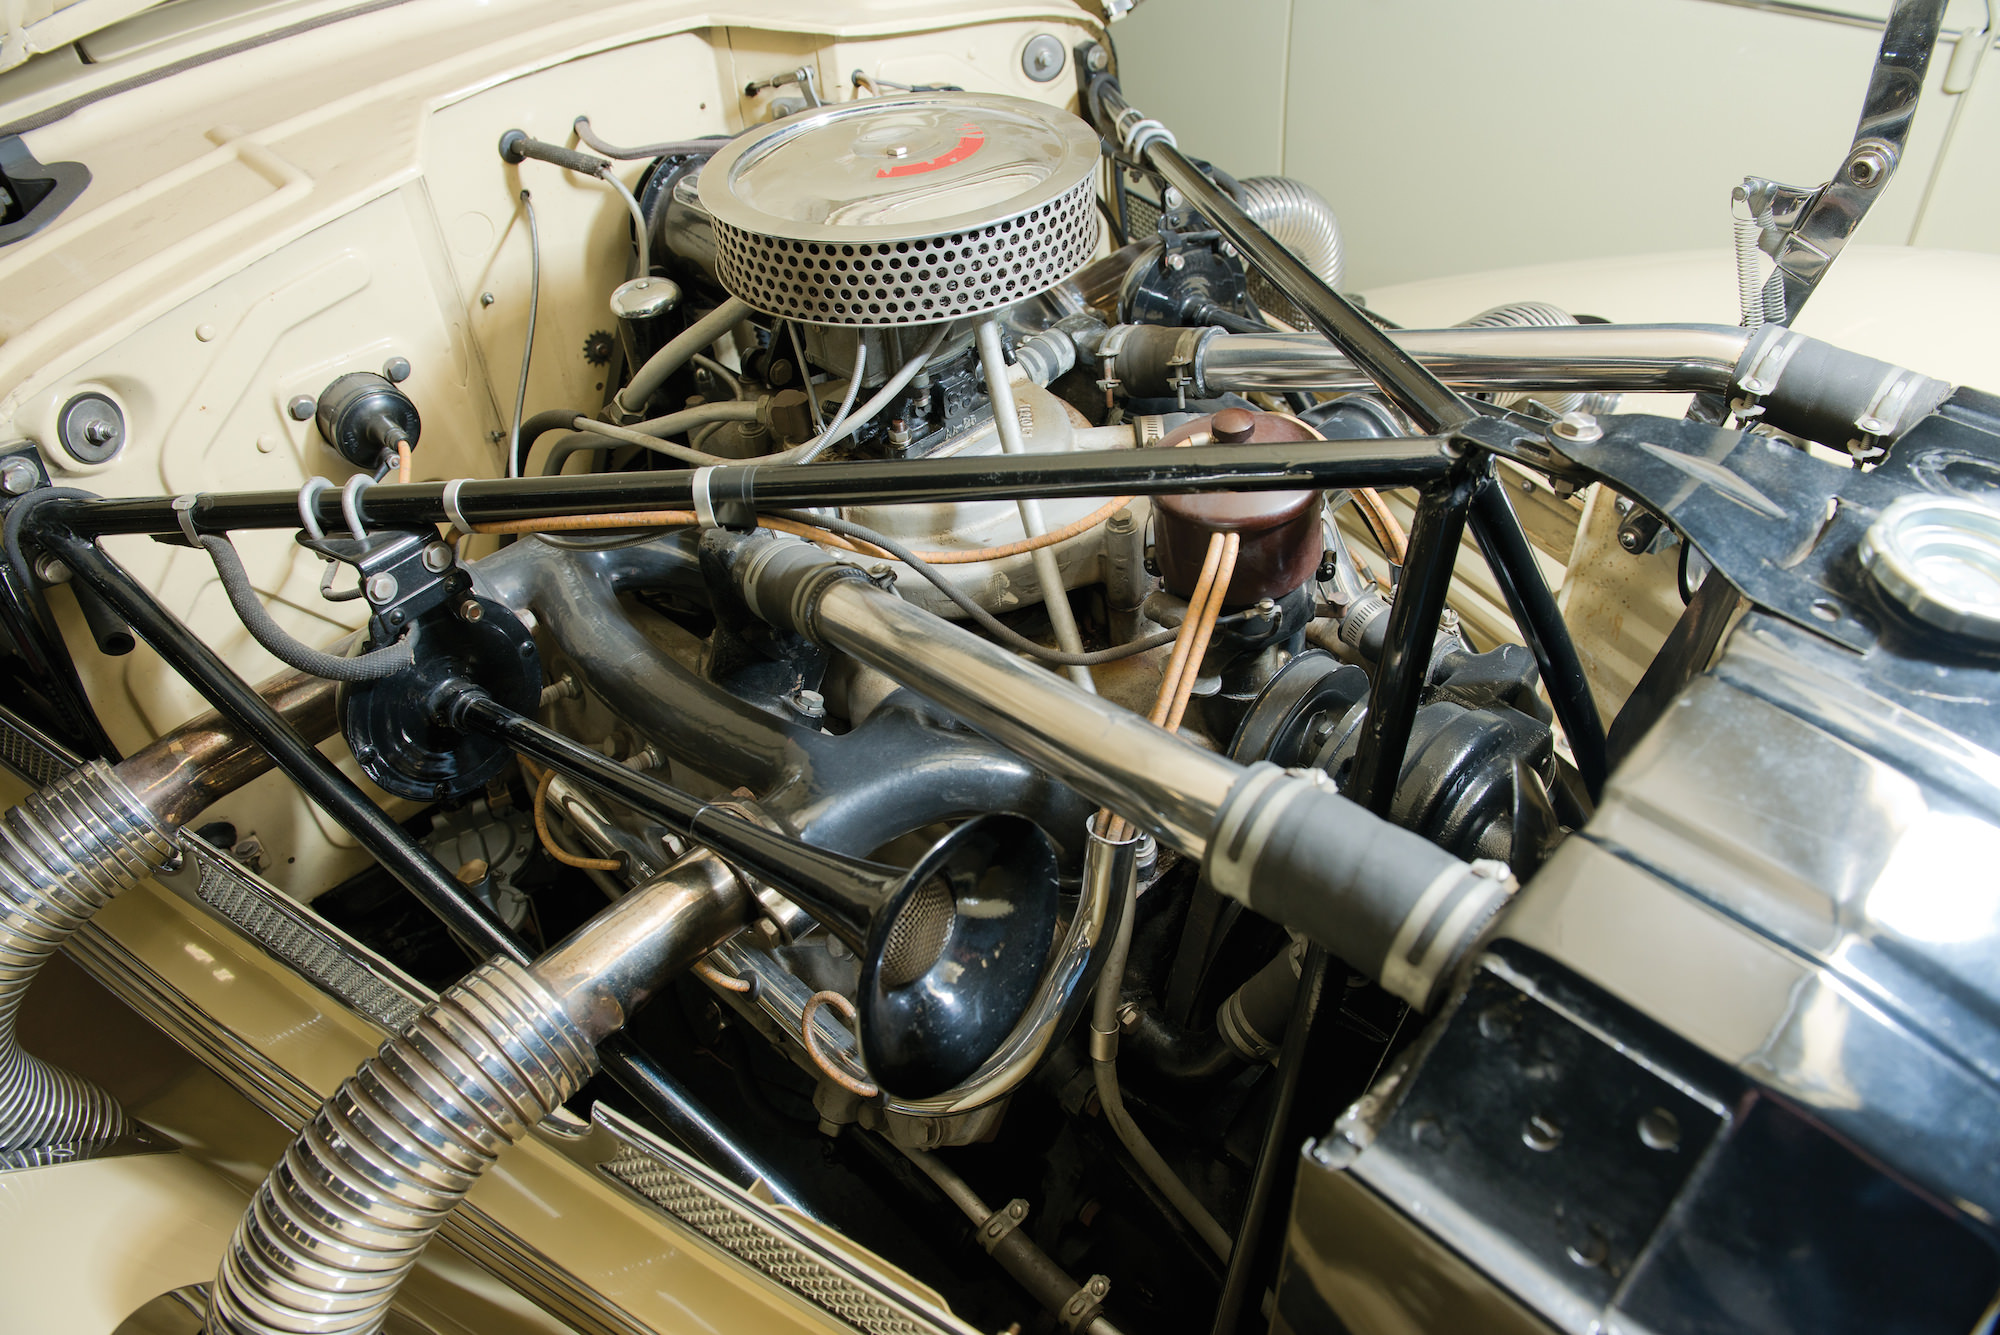 The Mighty Lycoming V8 Equipped 1937 Cord 812 Supercharged